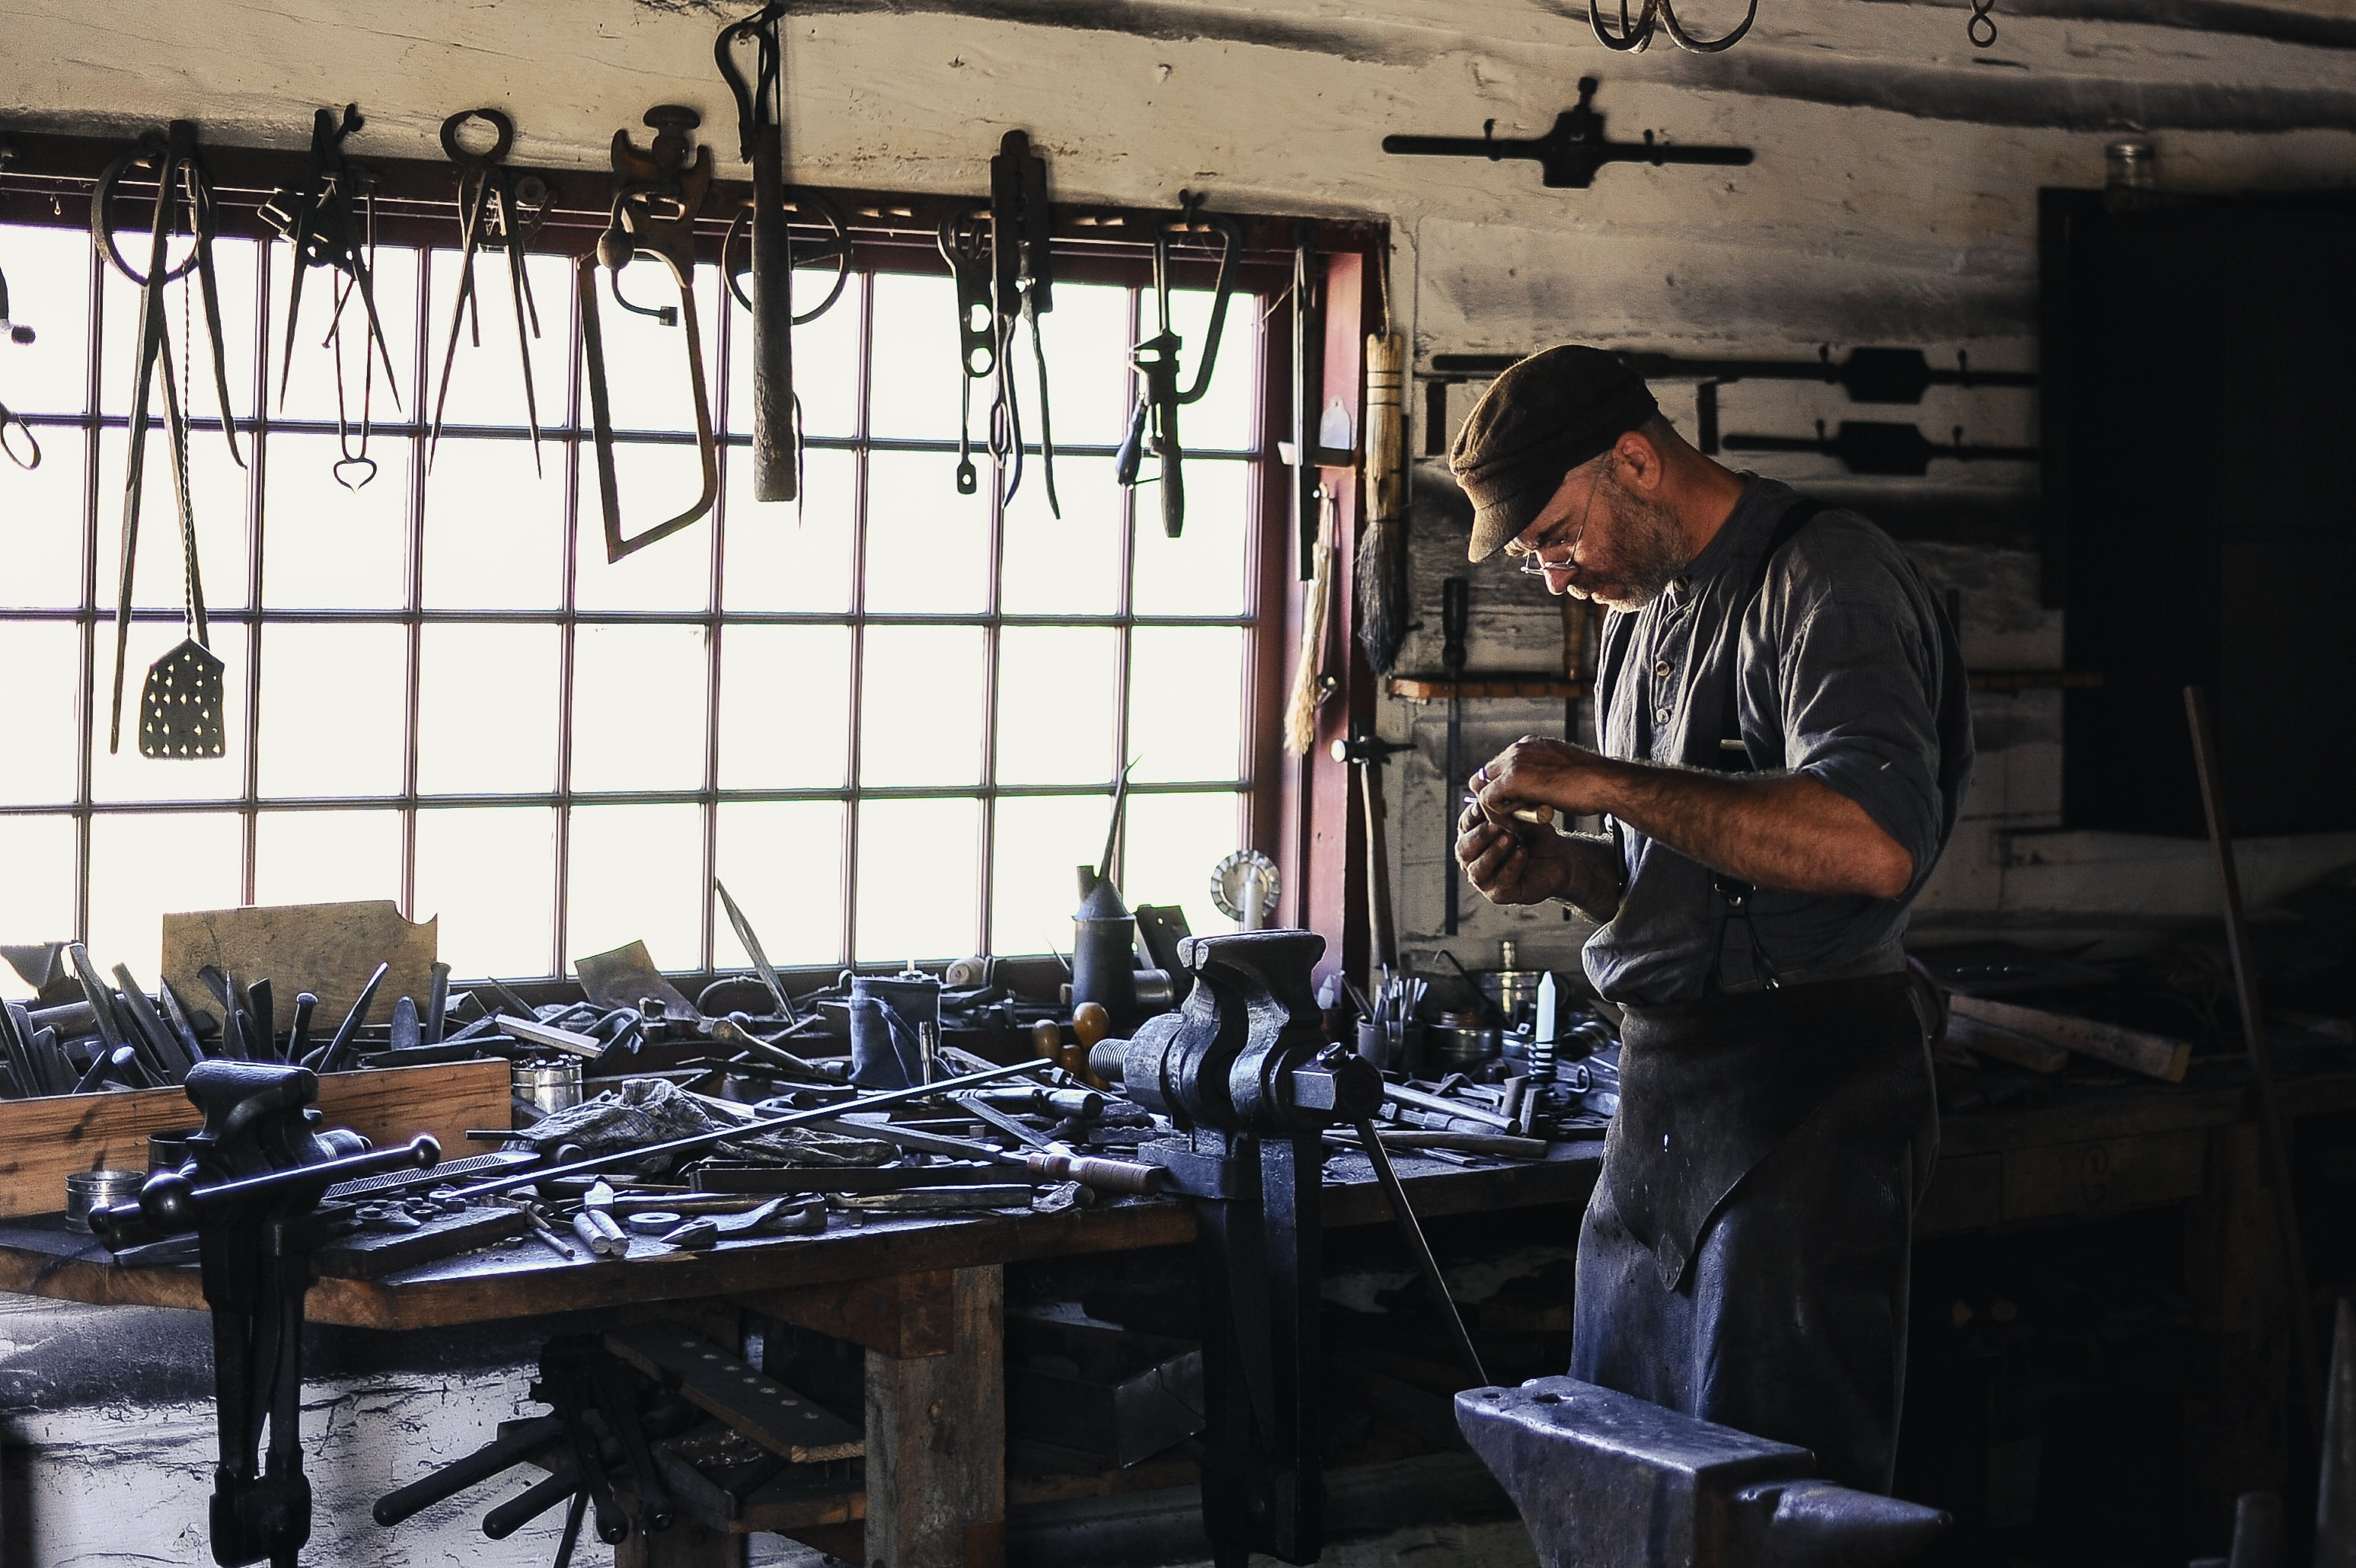 A middle-aged man working near a workbench with various tools on it in a workshop